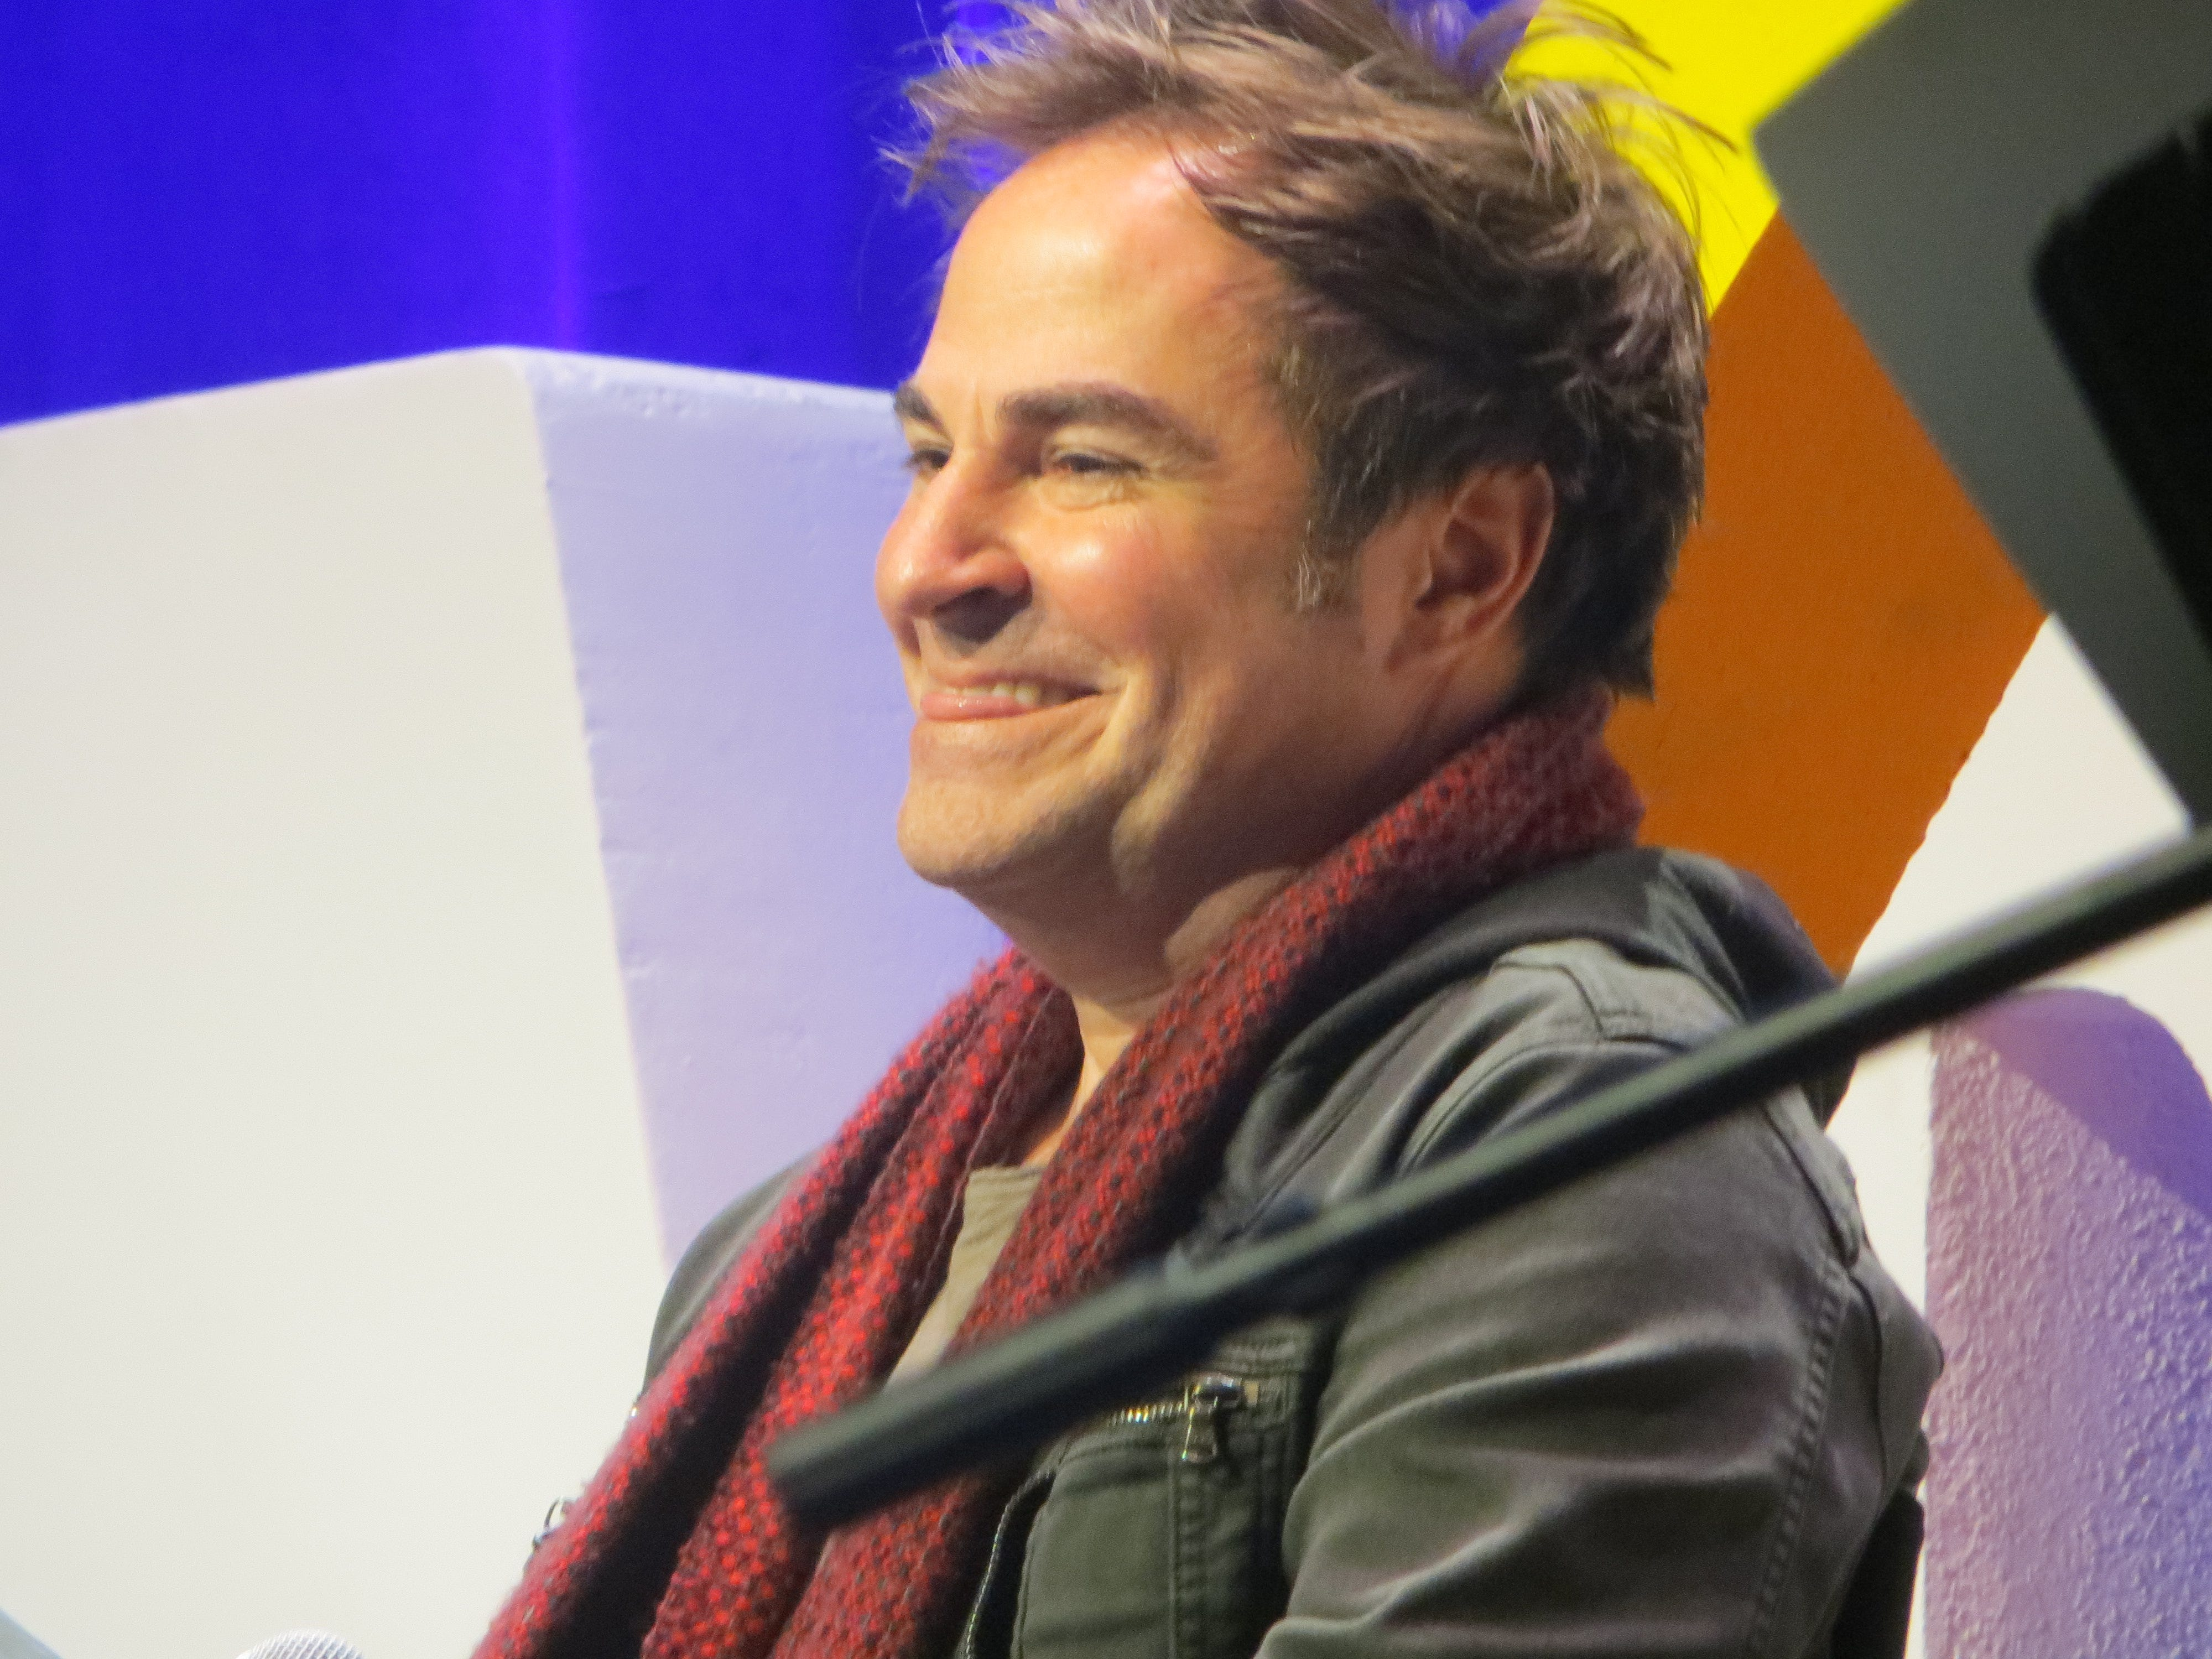 Roger Bart takes part in the Out on Broadway panel at BroadwayCon 2019, held Jan. 11 to 13, 2019, at the New York Hilton Midtown in Manhattan.